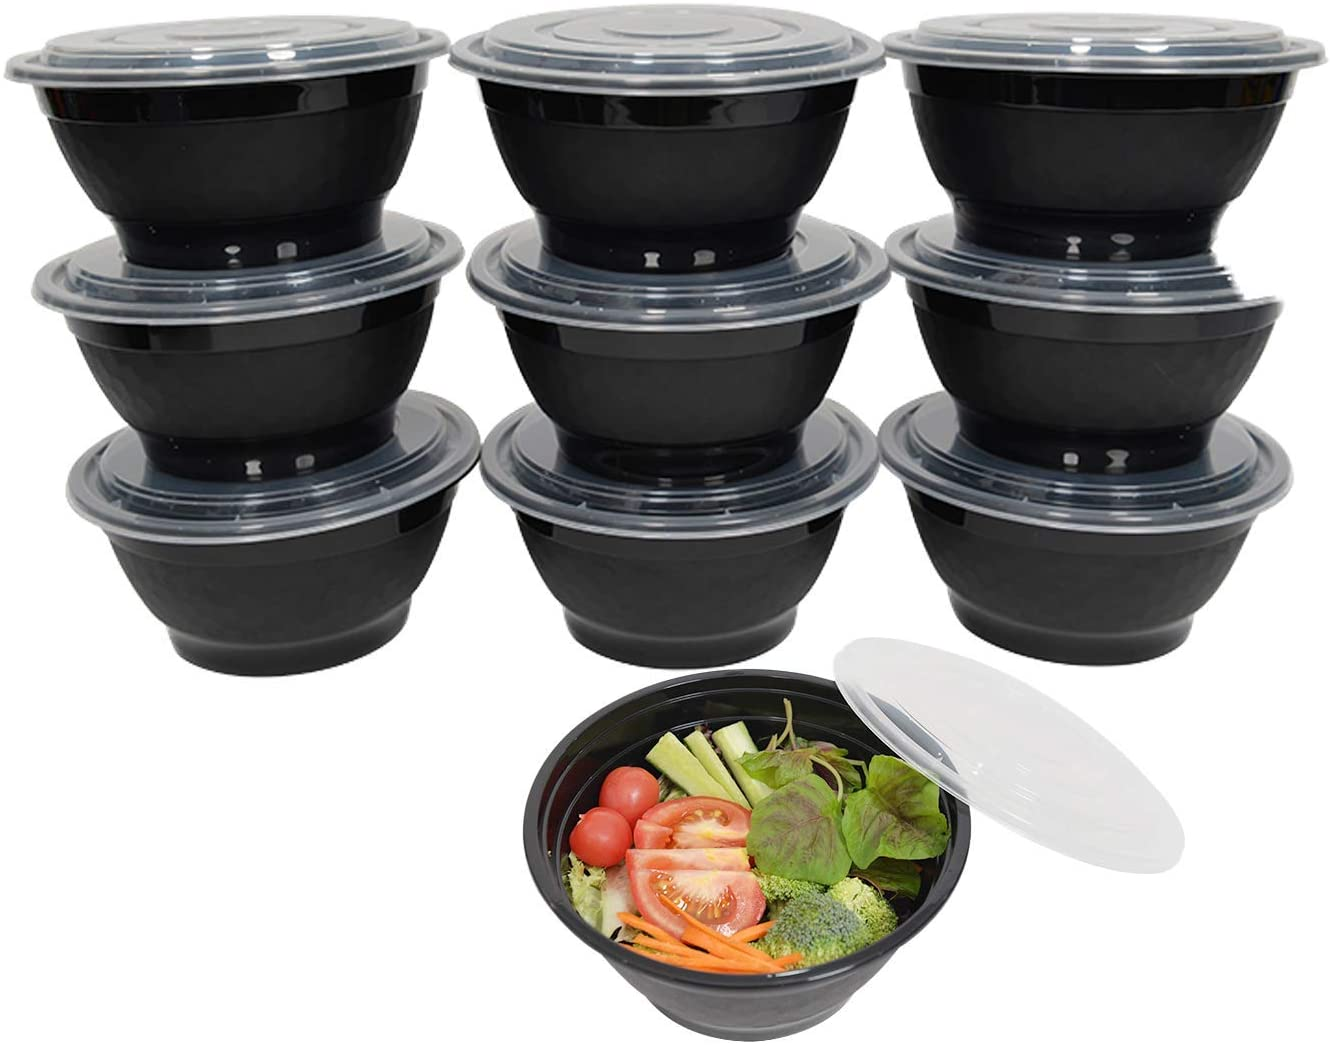 Elam Plastic Meal Prep Container Noodle Bowl 25-pack 42oz Meal Prep Containers Round Bowls with Lids Food Storage Salad Bowl Bento Box Microwavable(BPA Free) Freezer/Dishwasher Safe Disposable